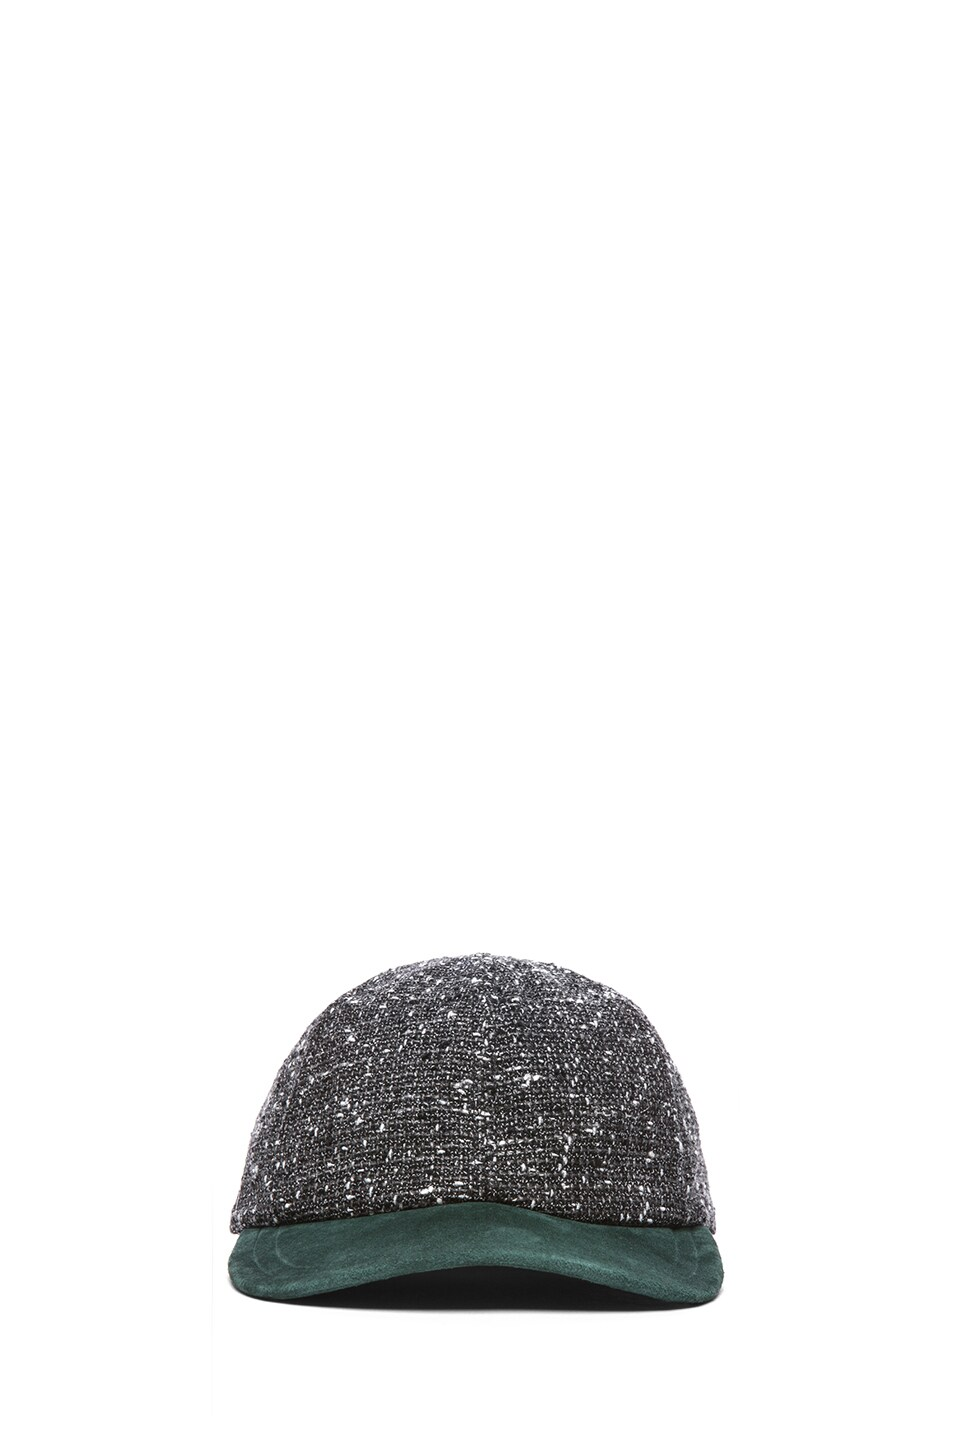 Image 1 of Eugenia Kim Darien Baseball Cap in Charcoal Tweed